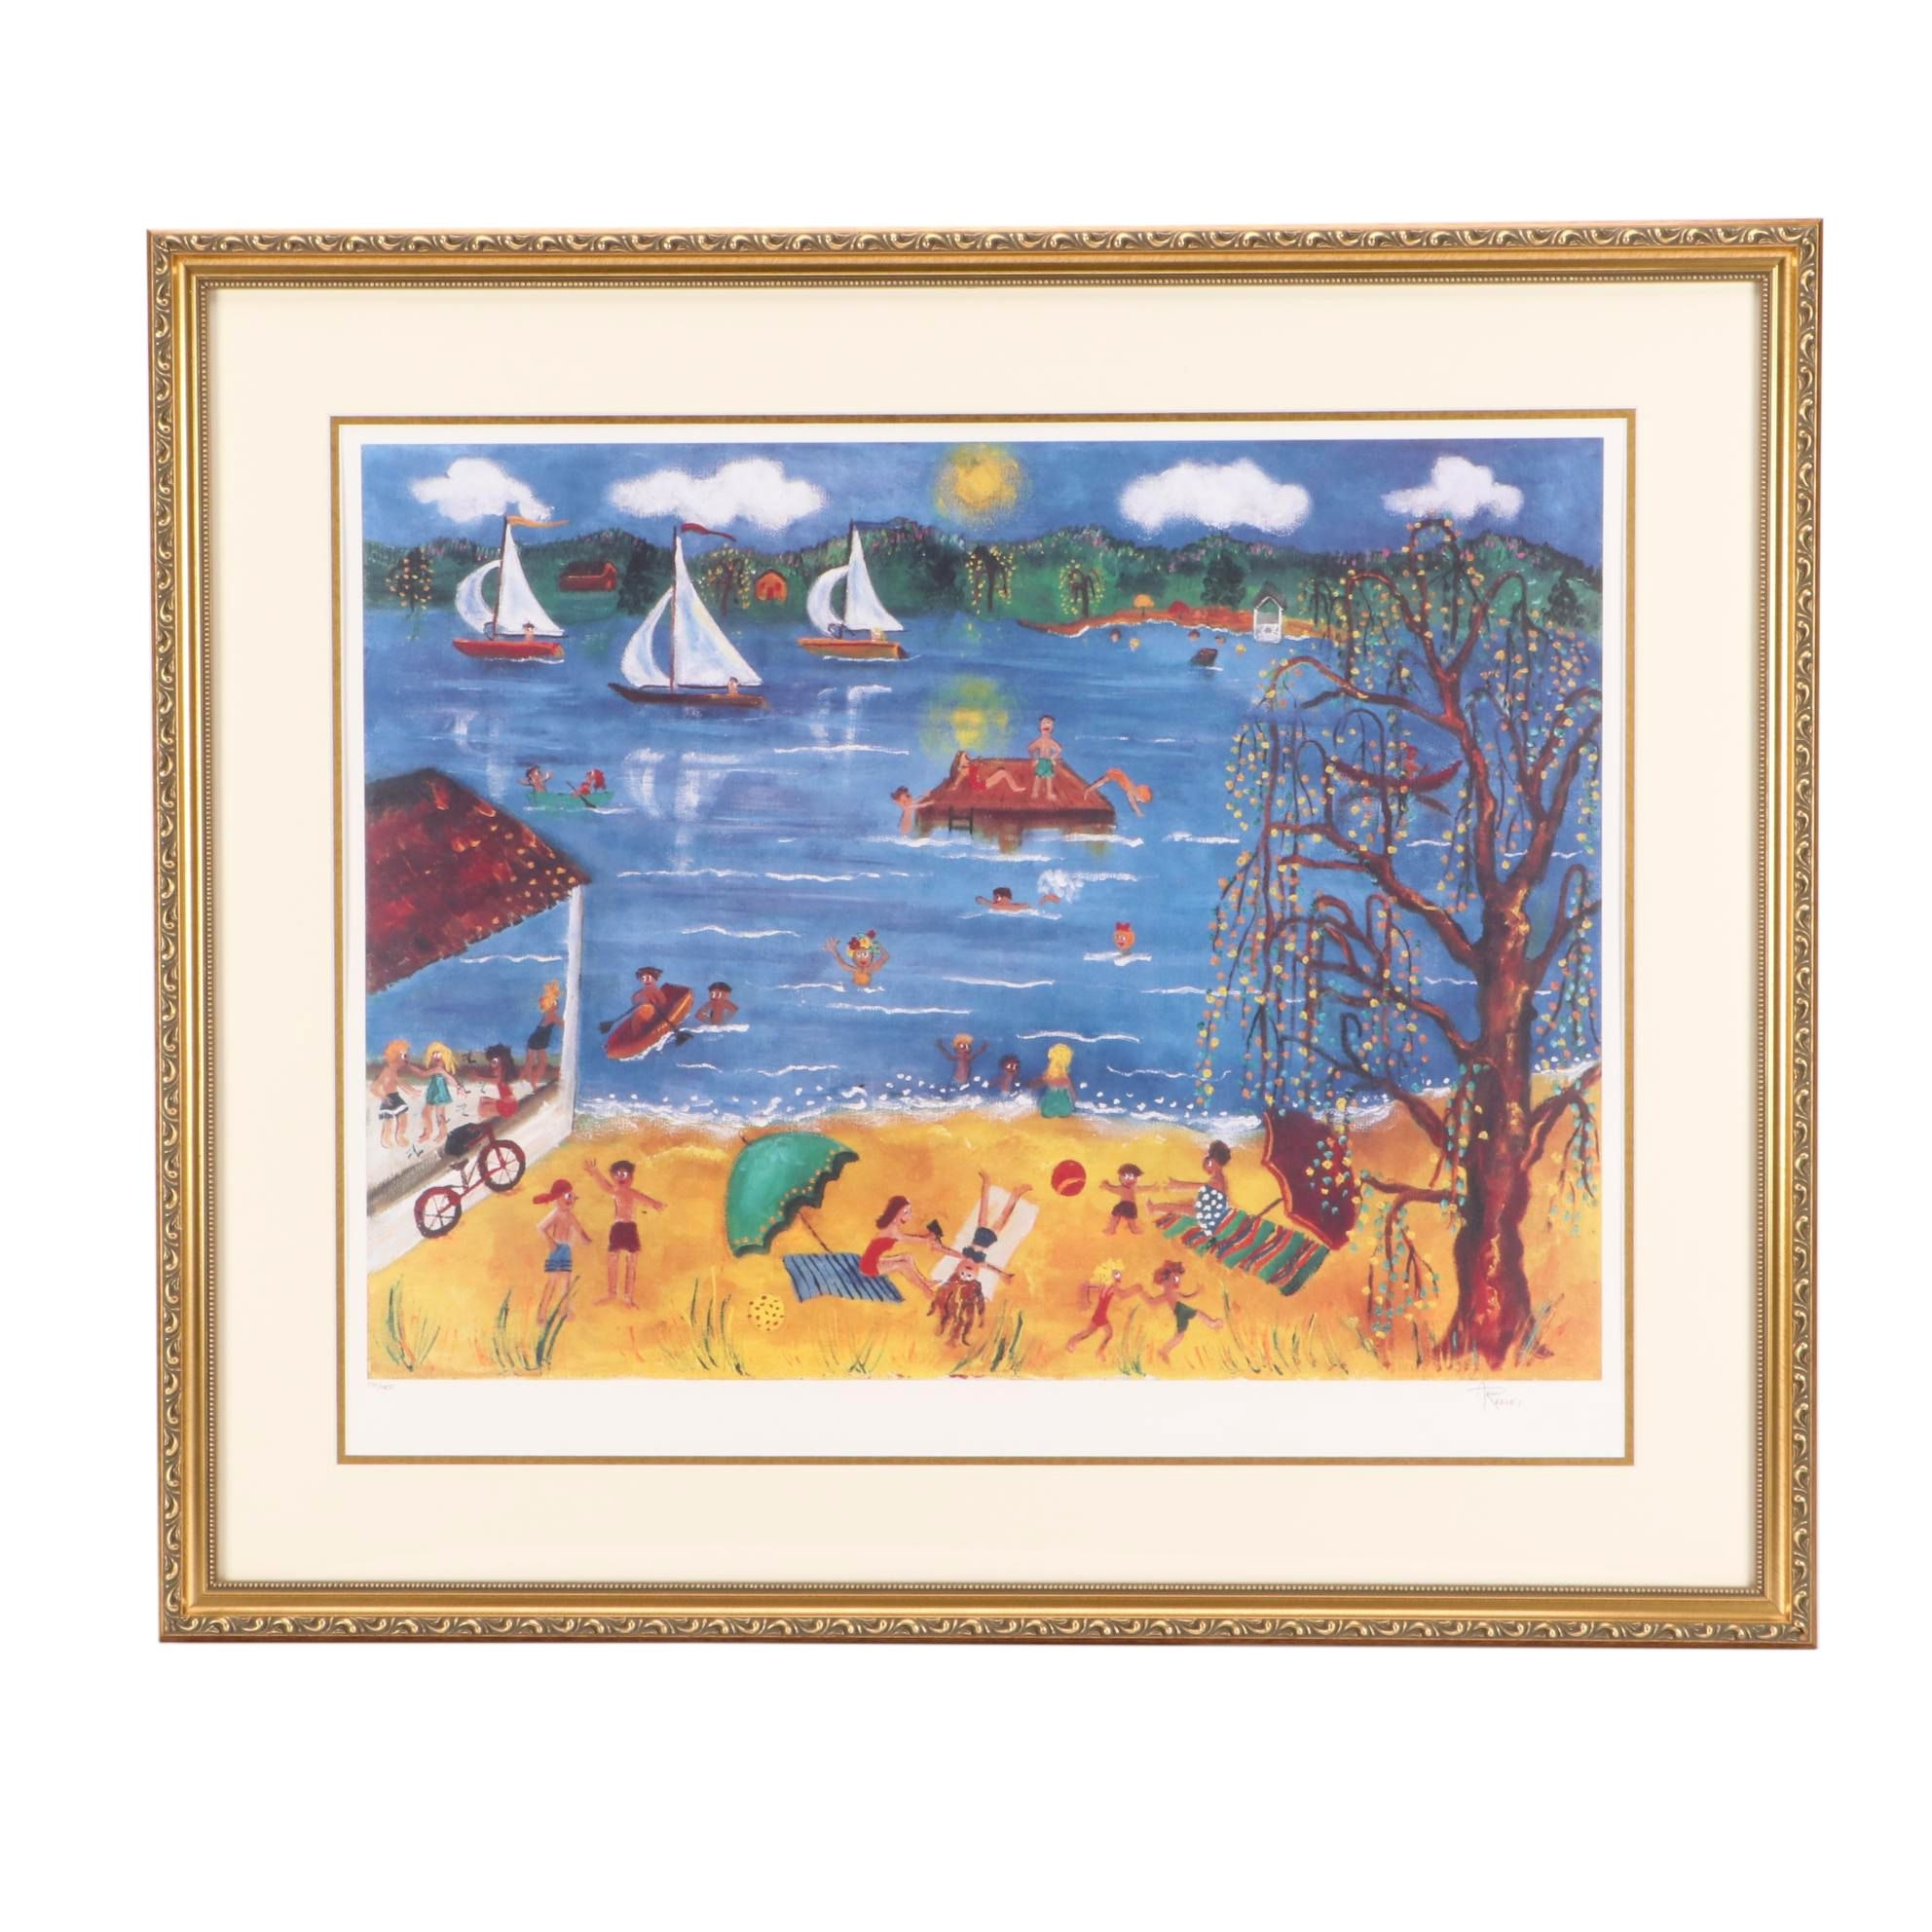 Ann Reeves Limited Edition Offset Lithograph after Naive Painting of Beach Scene